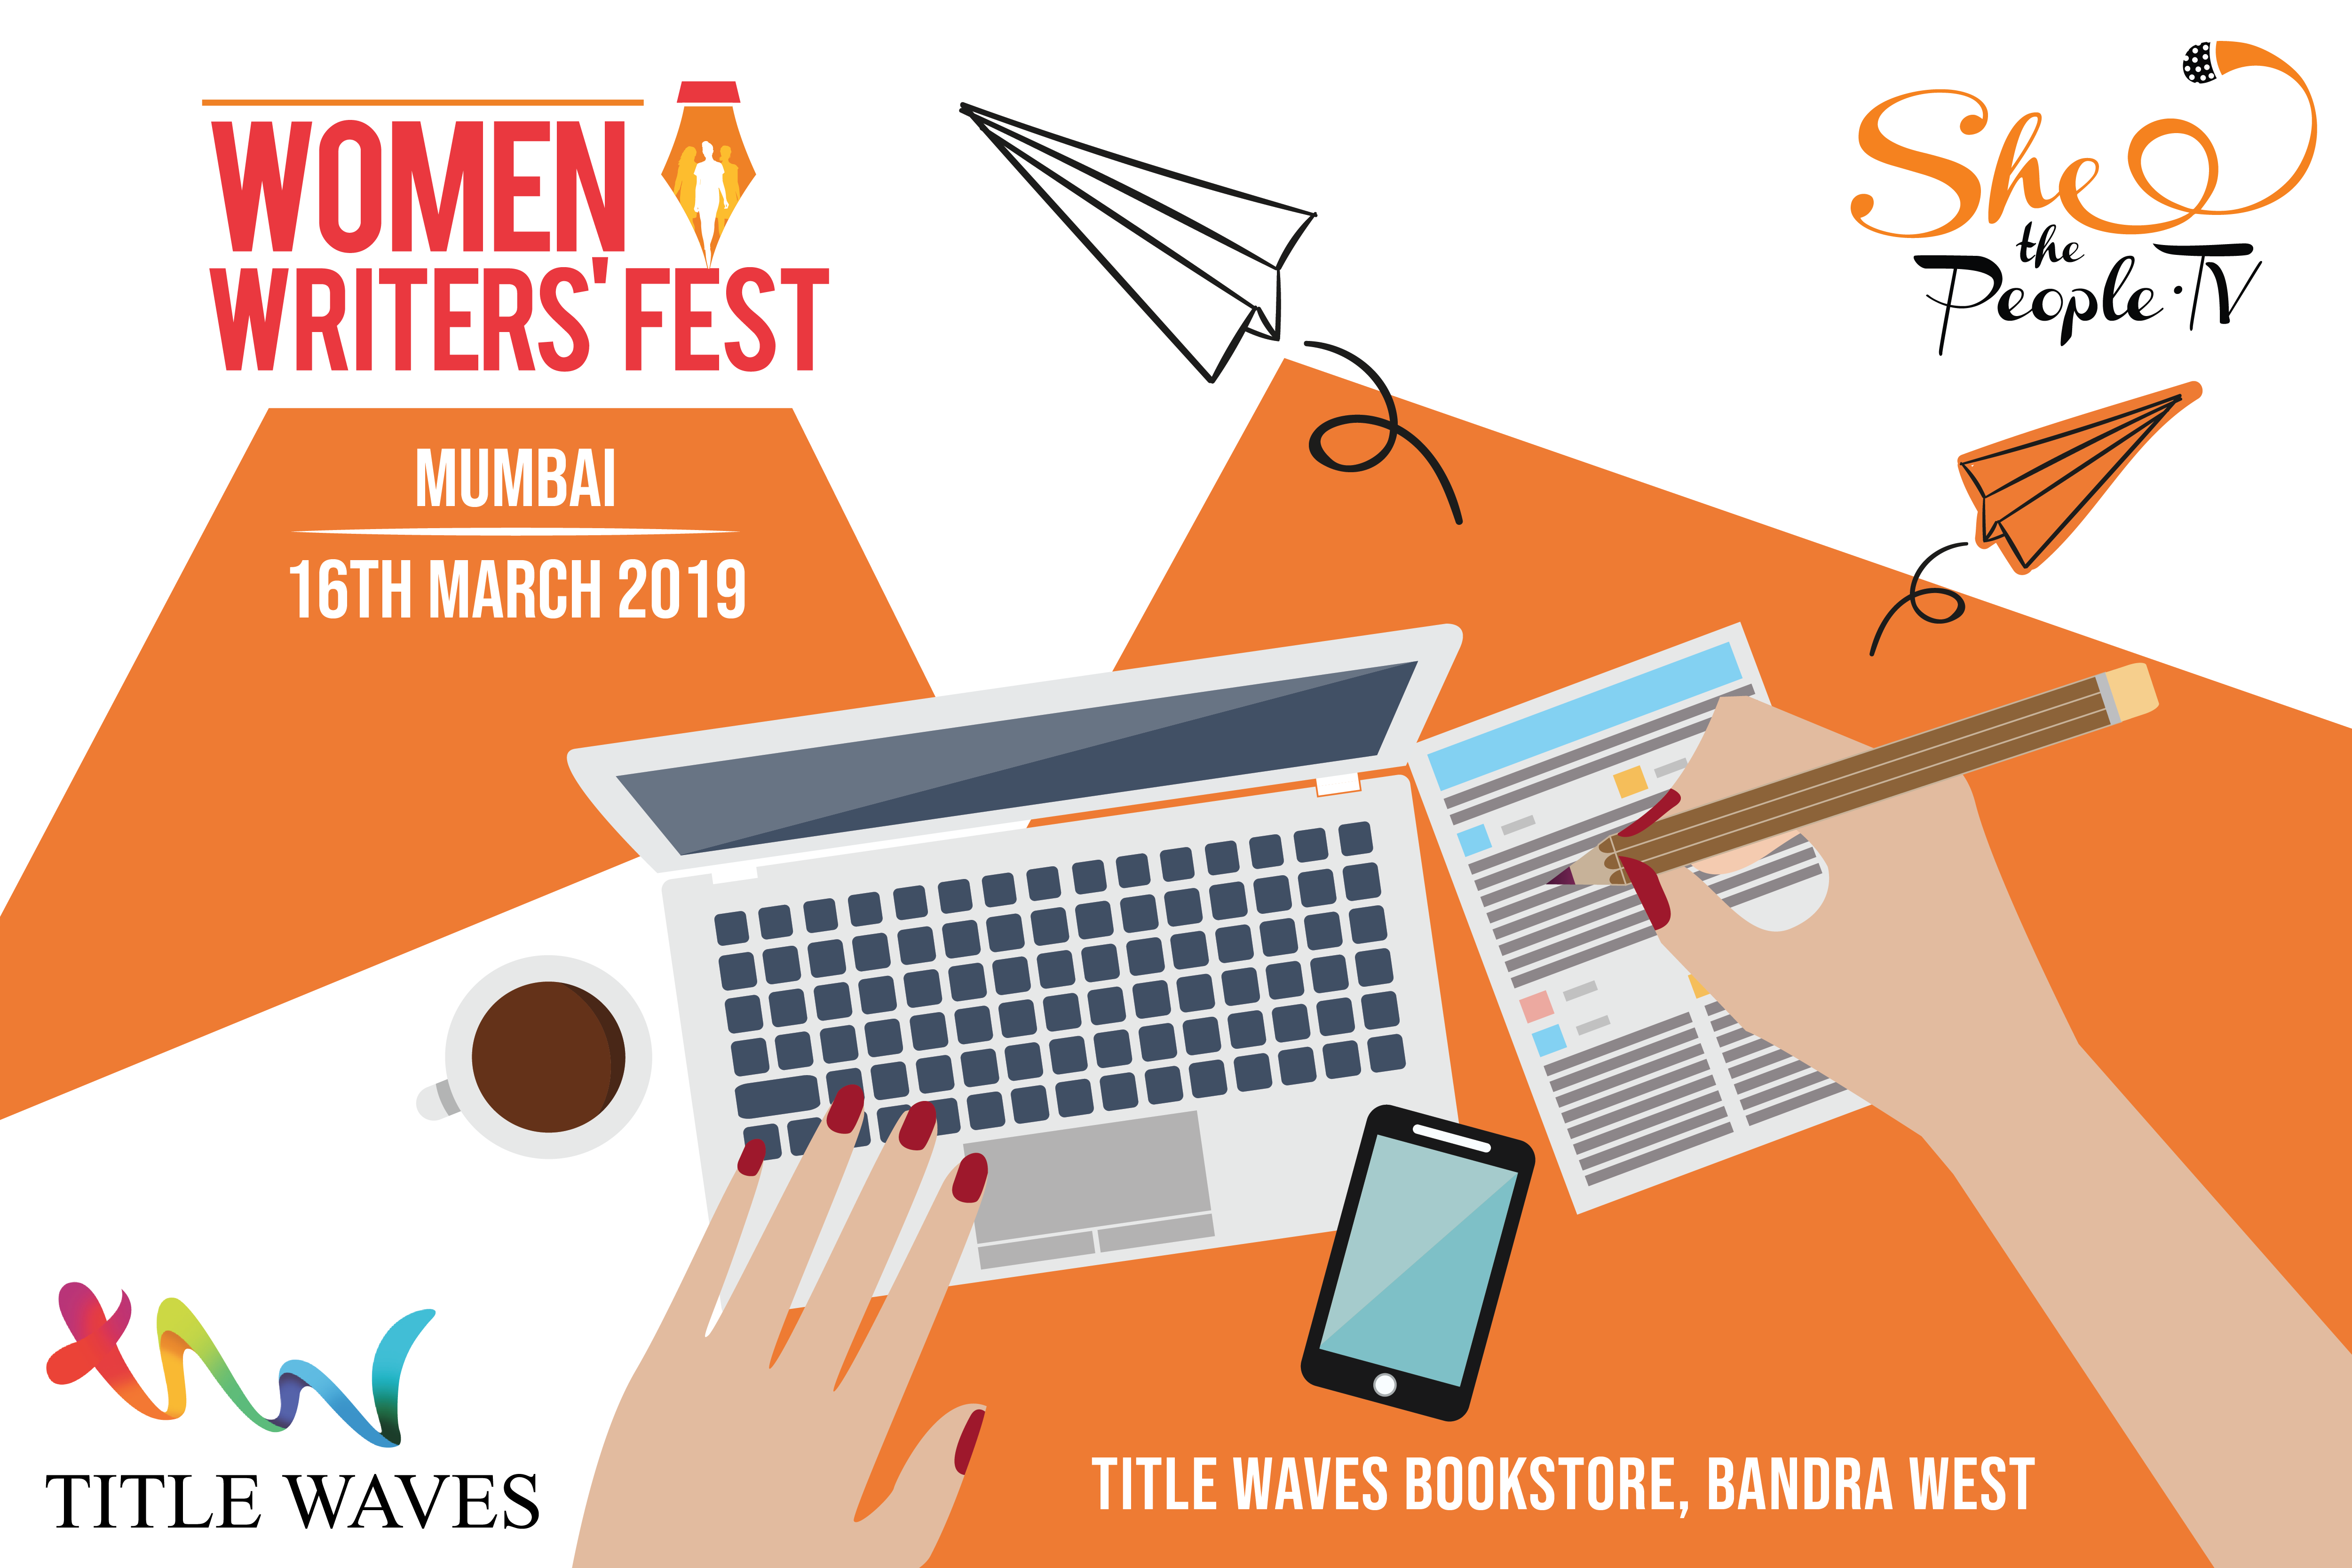 Women Writers Fest in Mumbai on 16th March 2019